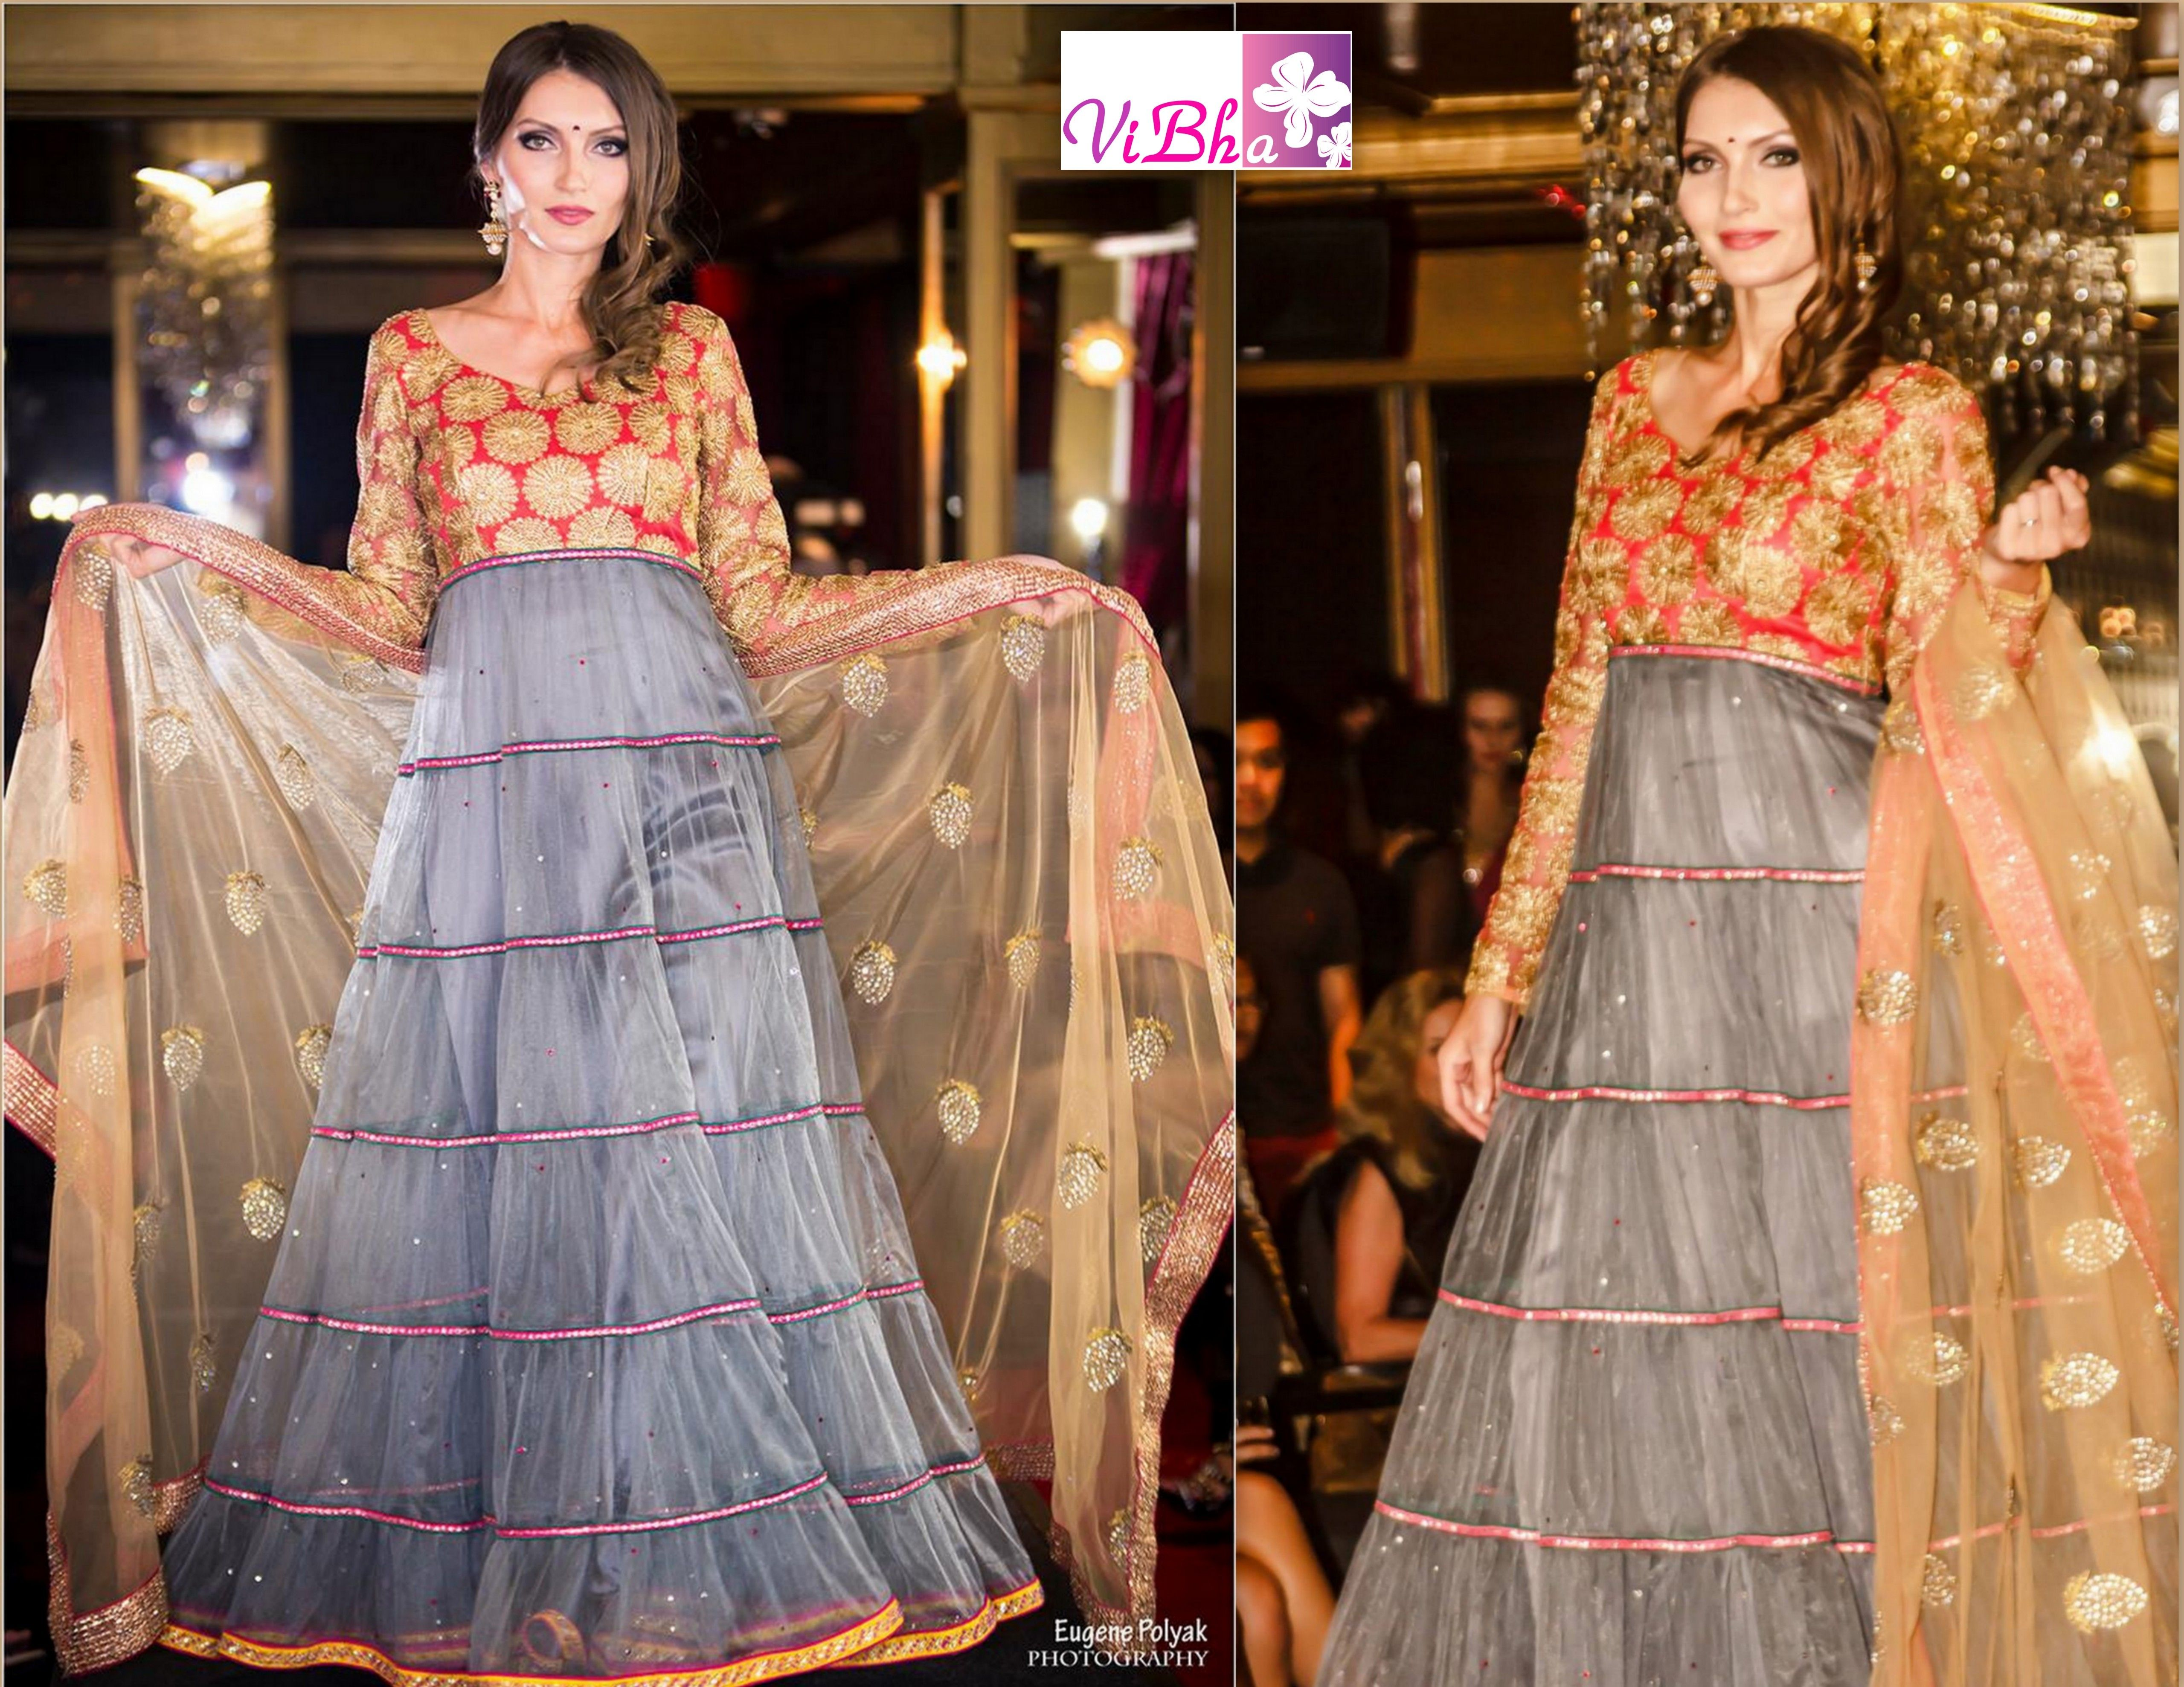 Beautiful floor length anarkali gown showcased in Fashion Community Week fashionshow!! Carmine red, aluminum grey and golden color shades are used in the design as per the theme. For inquiries mail to vinaya.gv@gmail.com